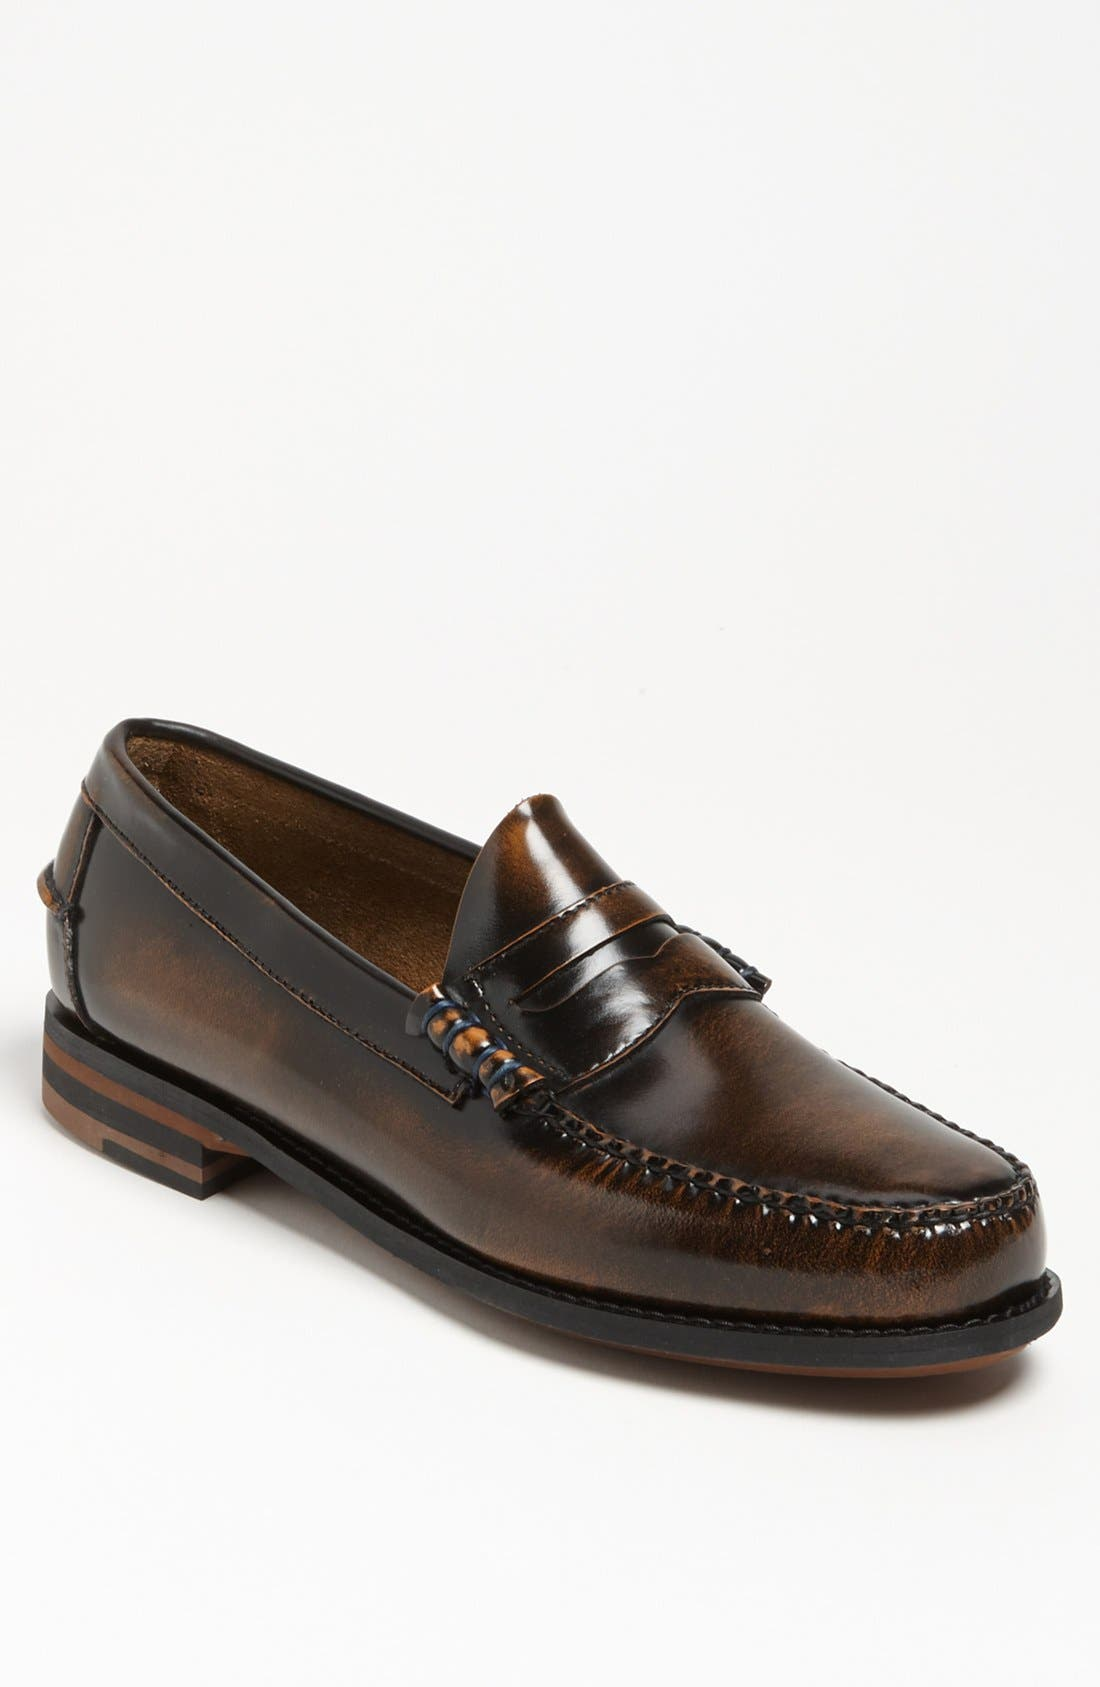 Main Image - G.H. Bass & Co. 'Naples' Penny Loafer